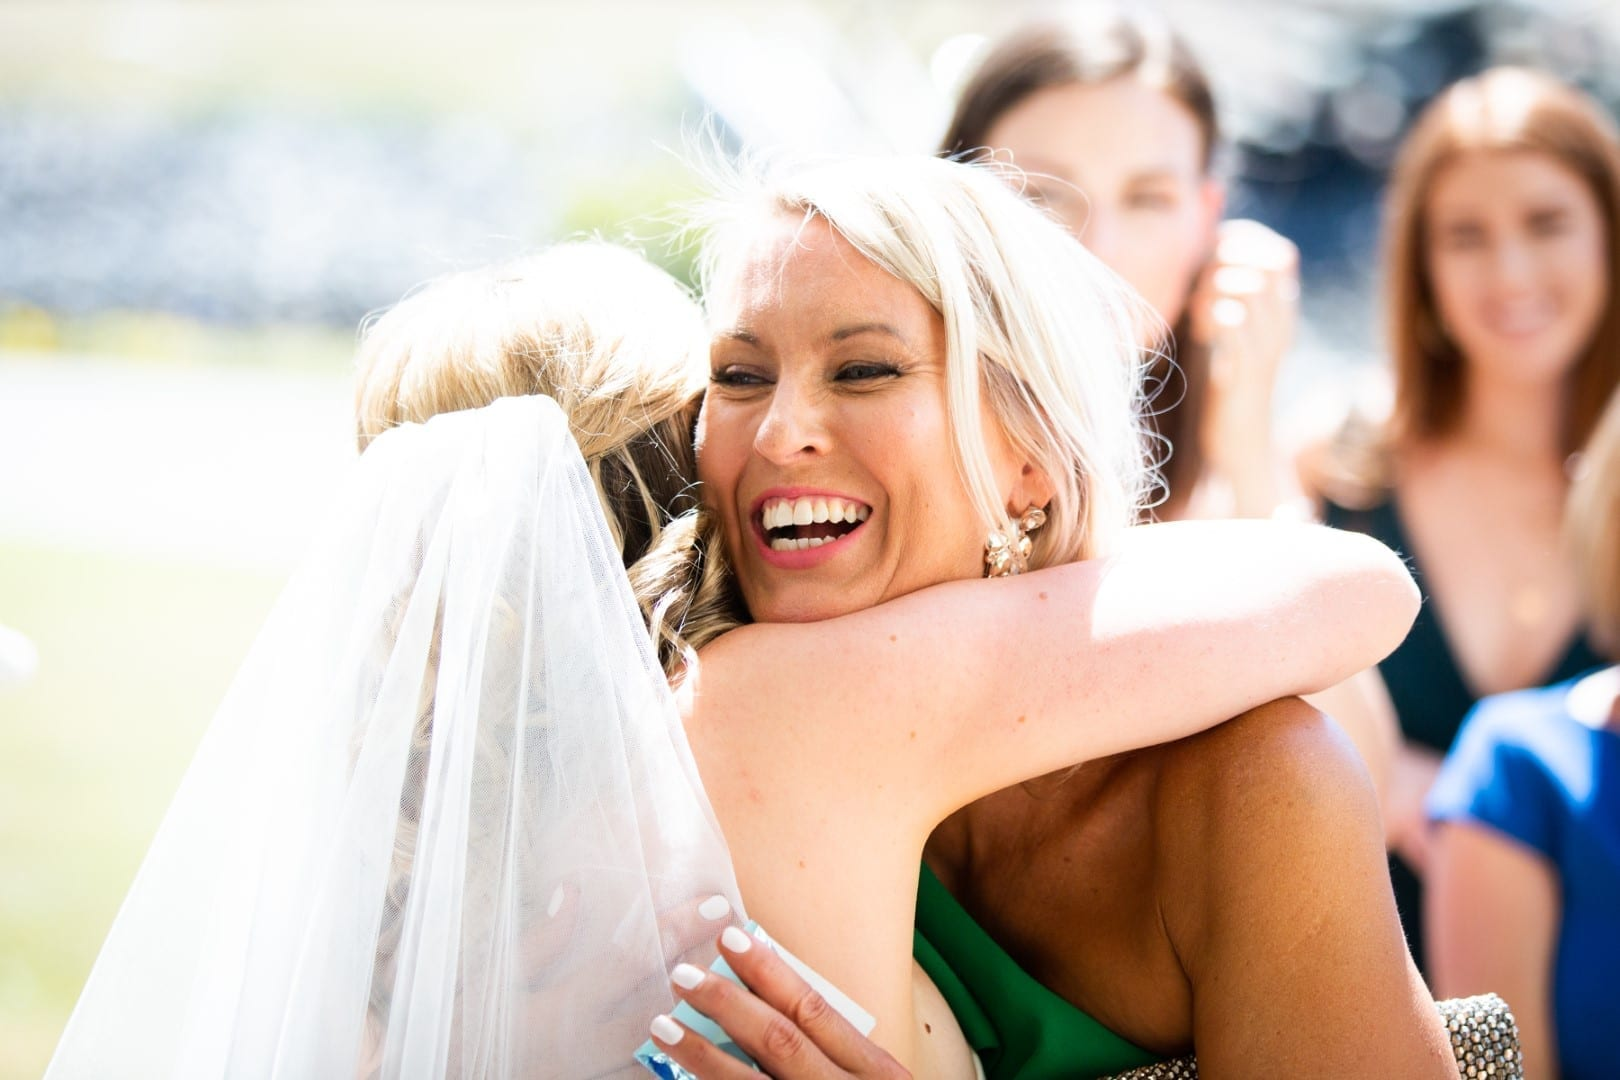 Bride celebrating with co-worker Jodie.